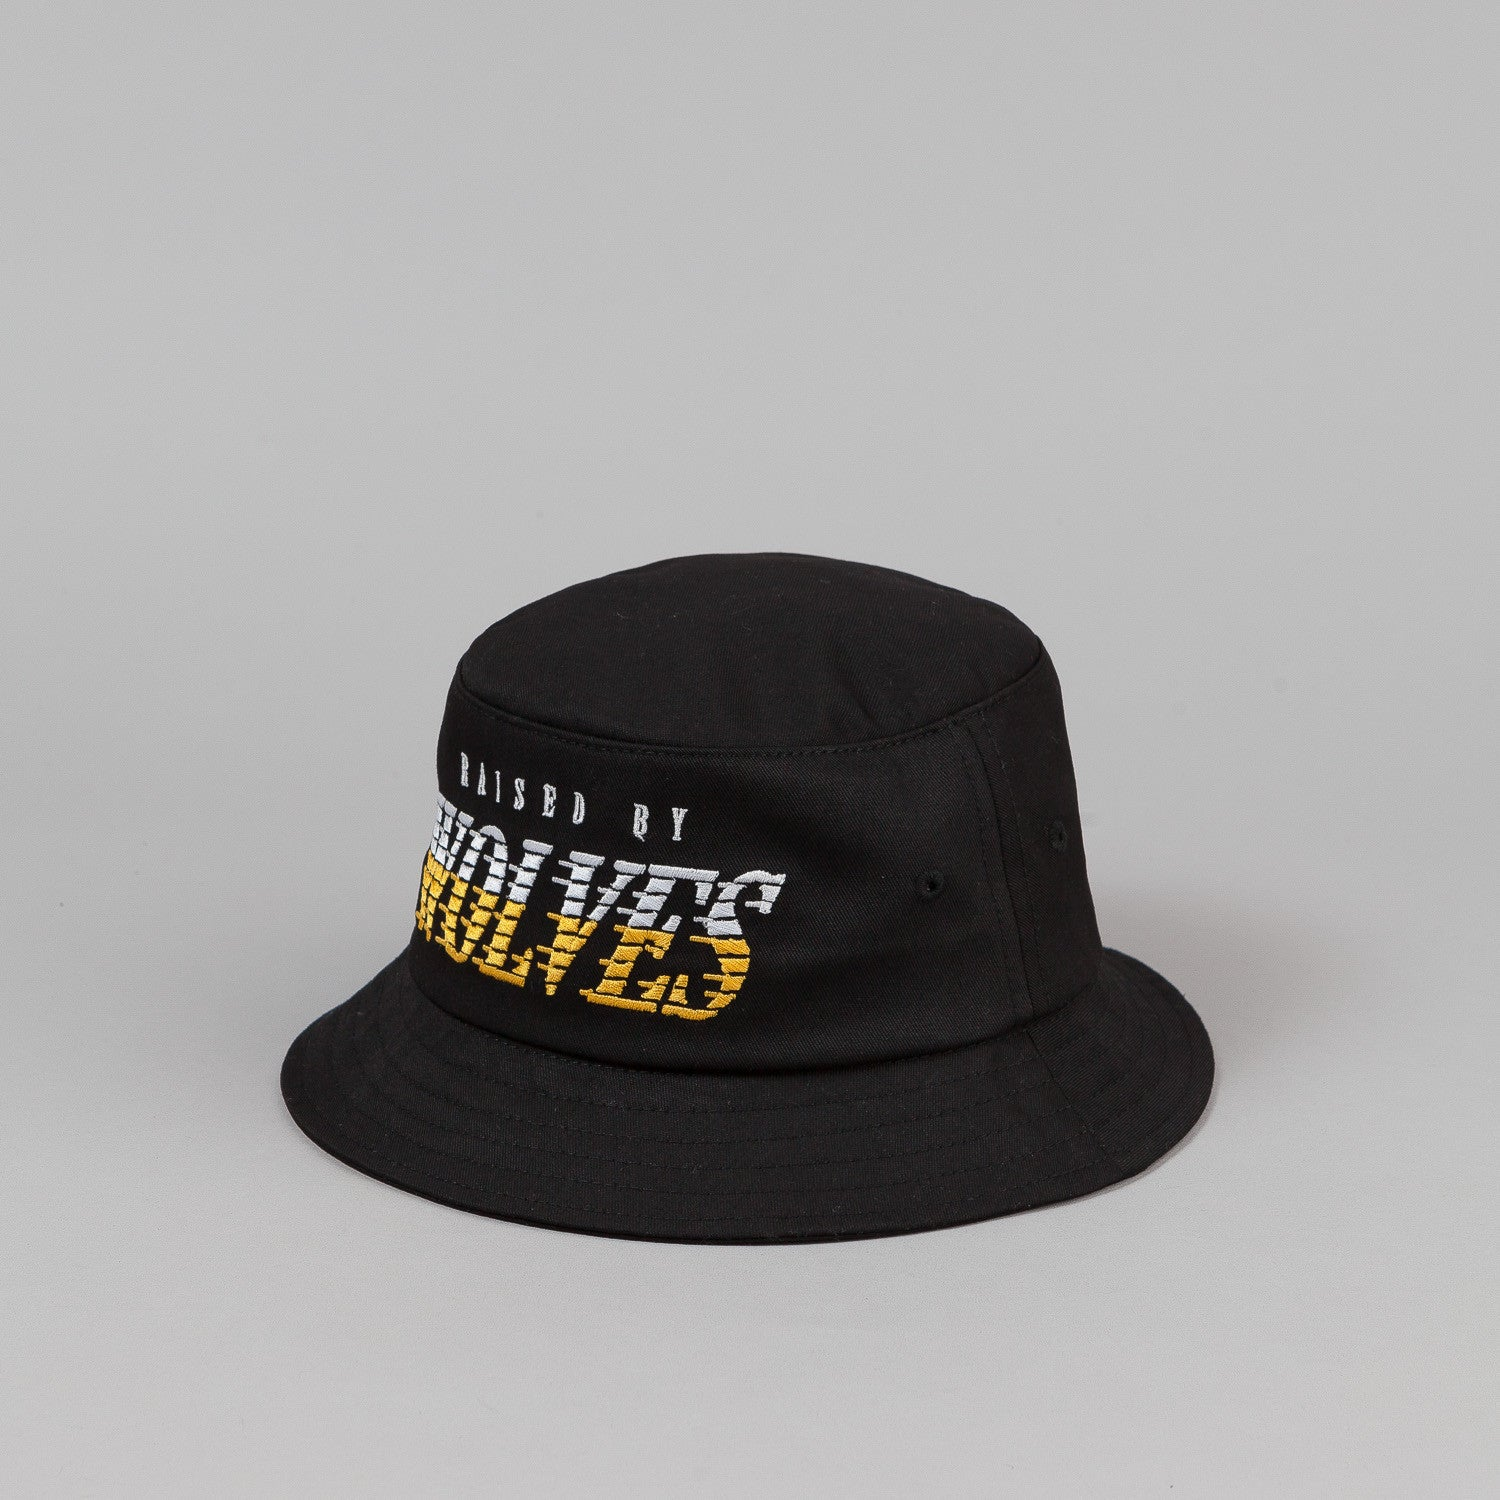 Raised By Wolves Full Tilt Bucket Hat